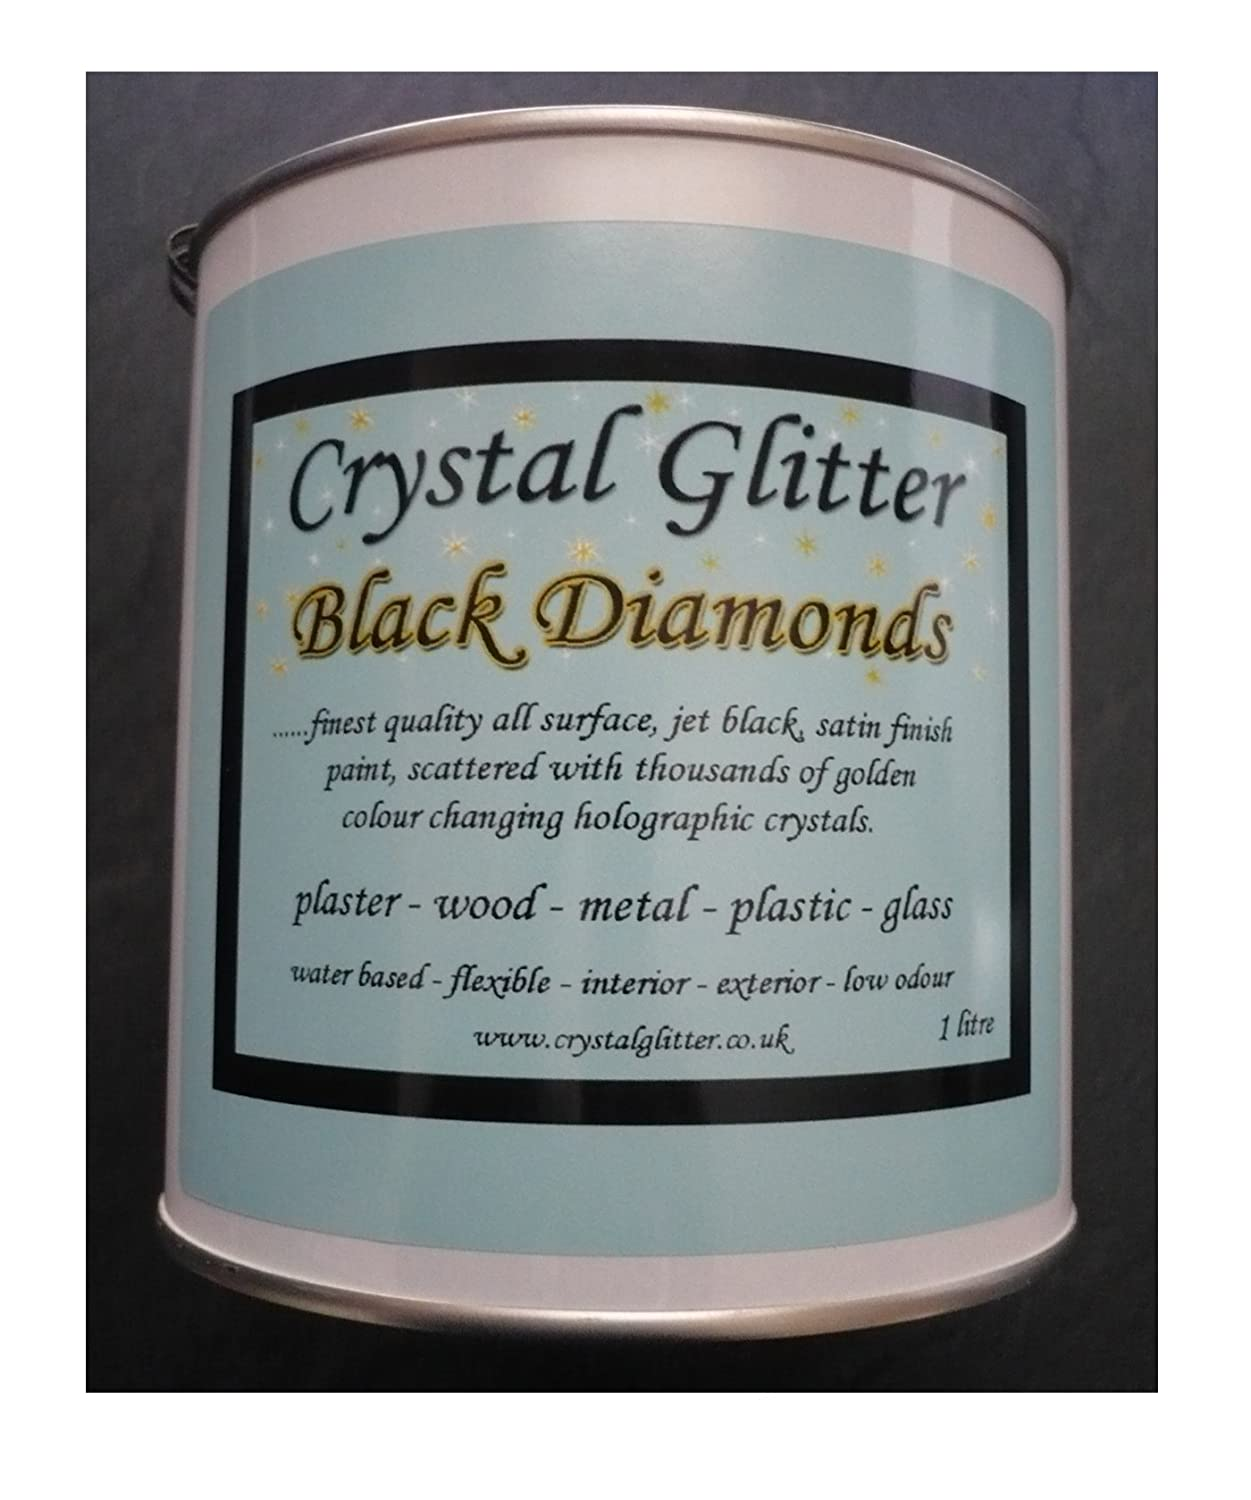 Crystal Glitter Black Diamonds magic jet black all surface glitter ...